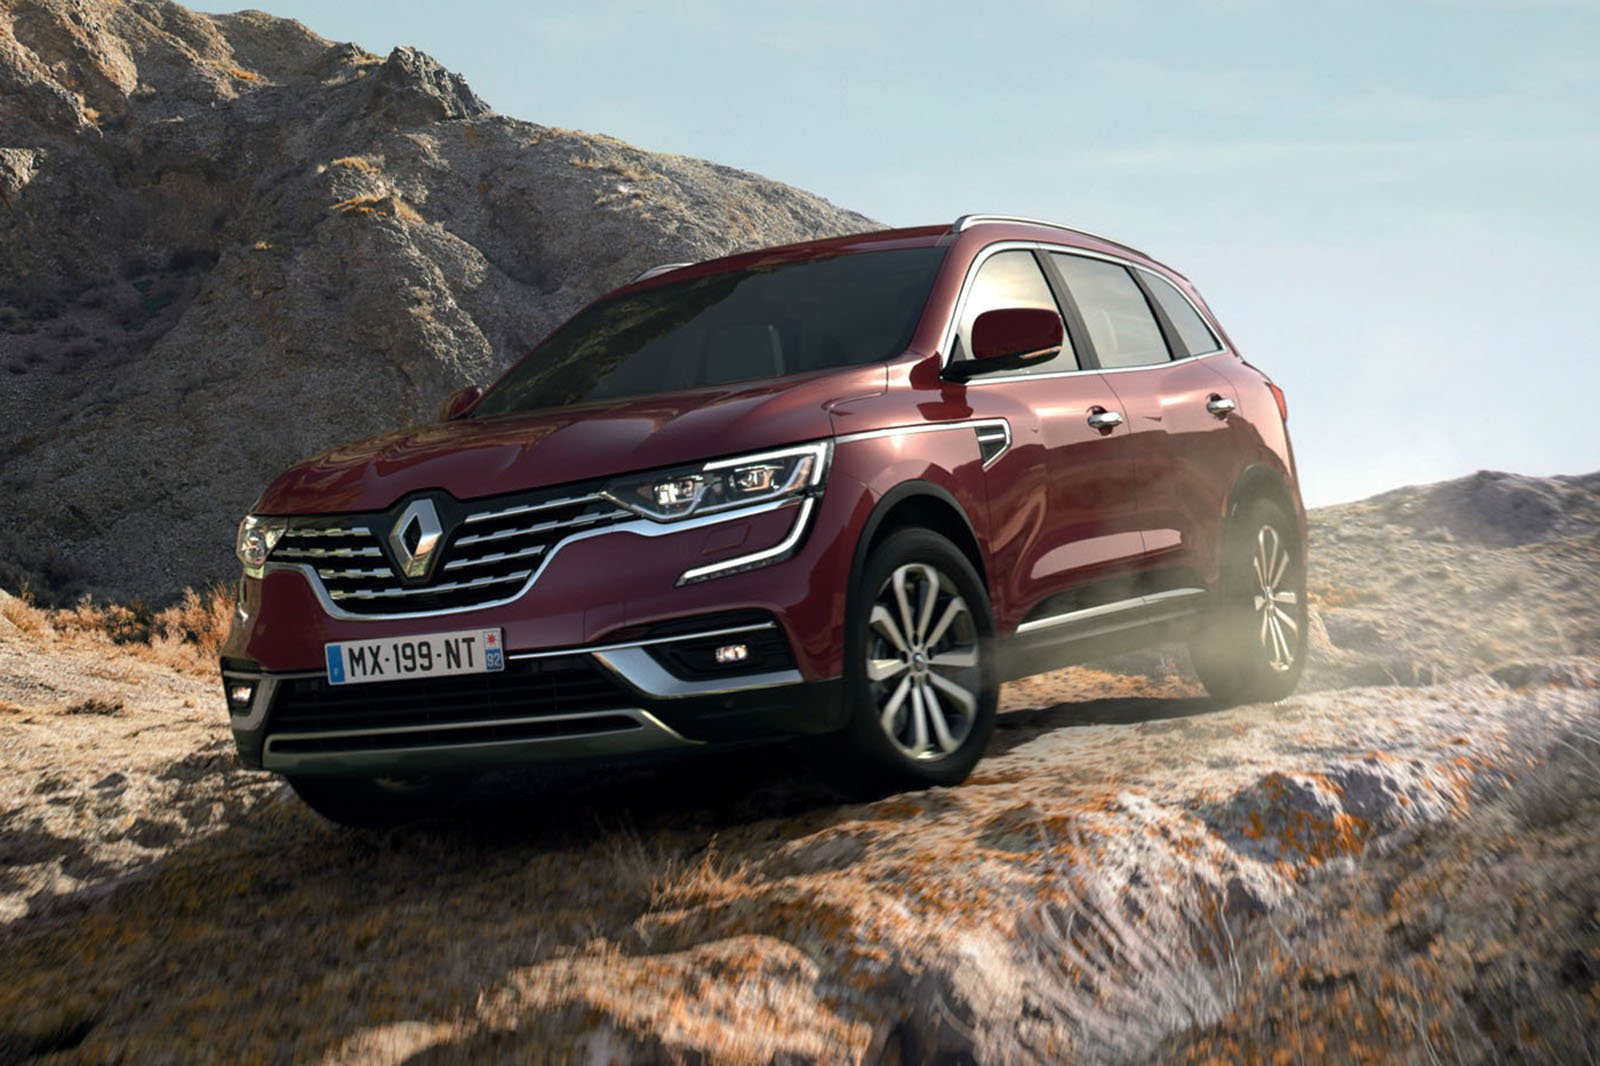 2019 Renault Koleos SUV revealed: price, specs and release date